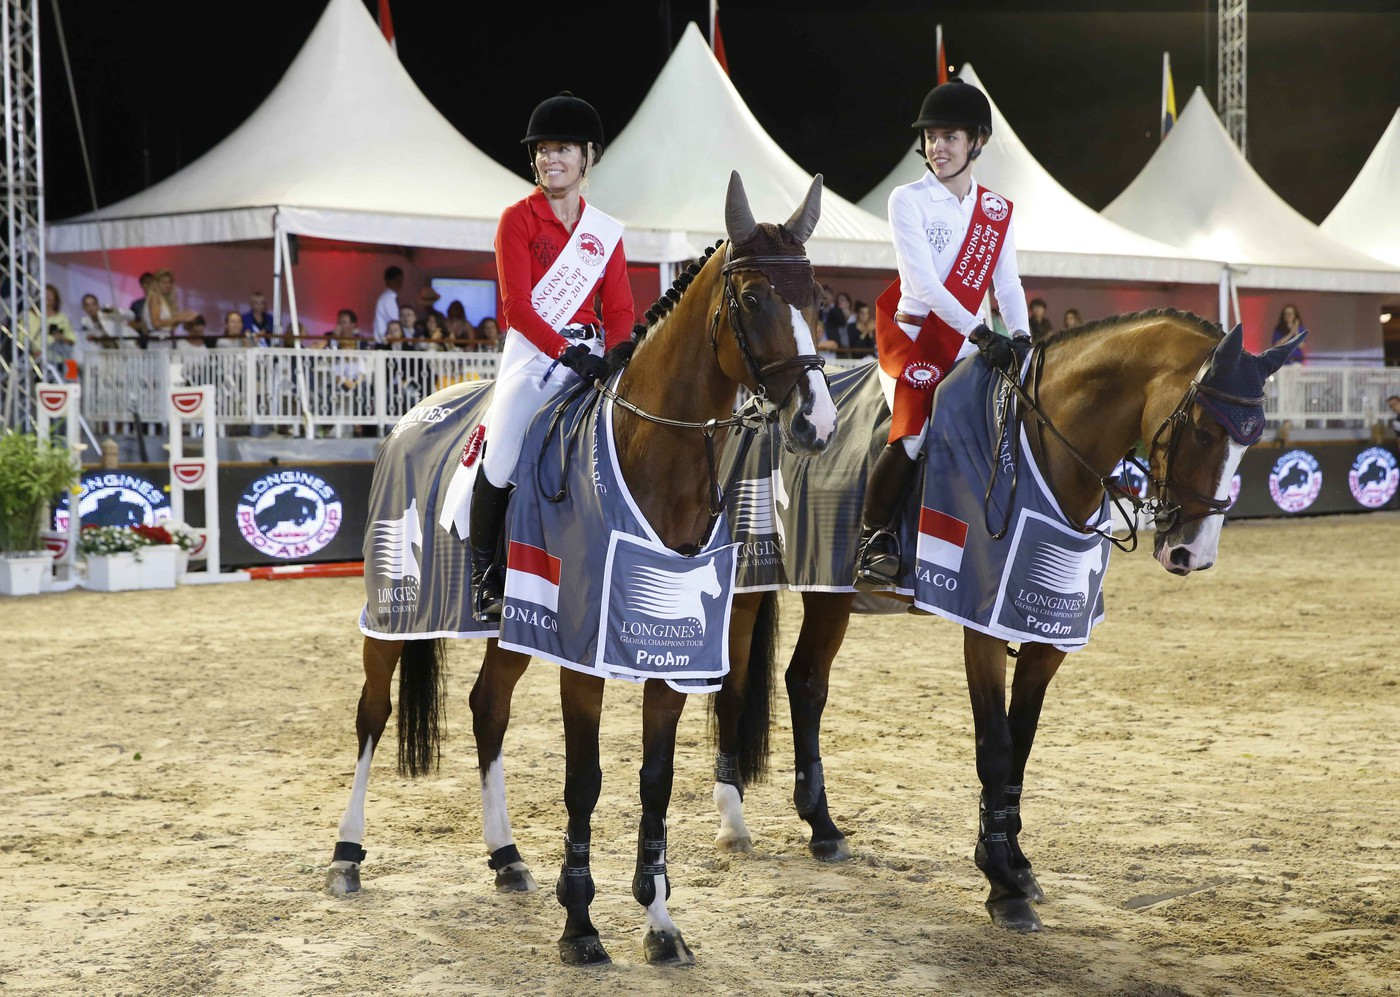 Longines Show Jumping Event: The Longines Global Champions Tour of Monaco: where elegance and performance meet 2